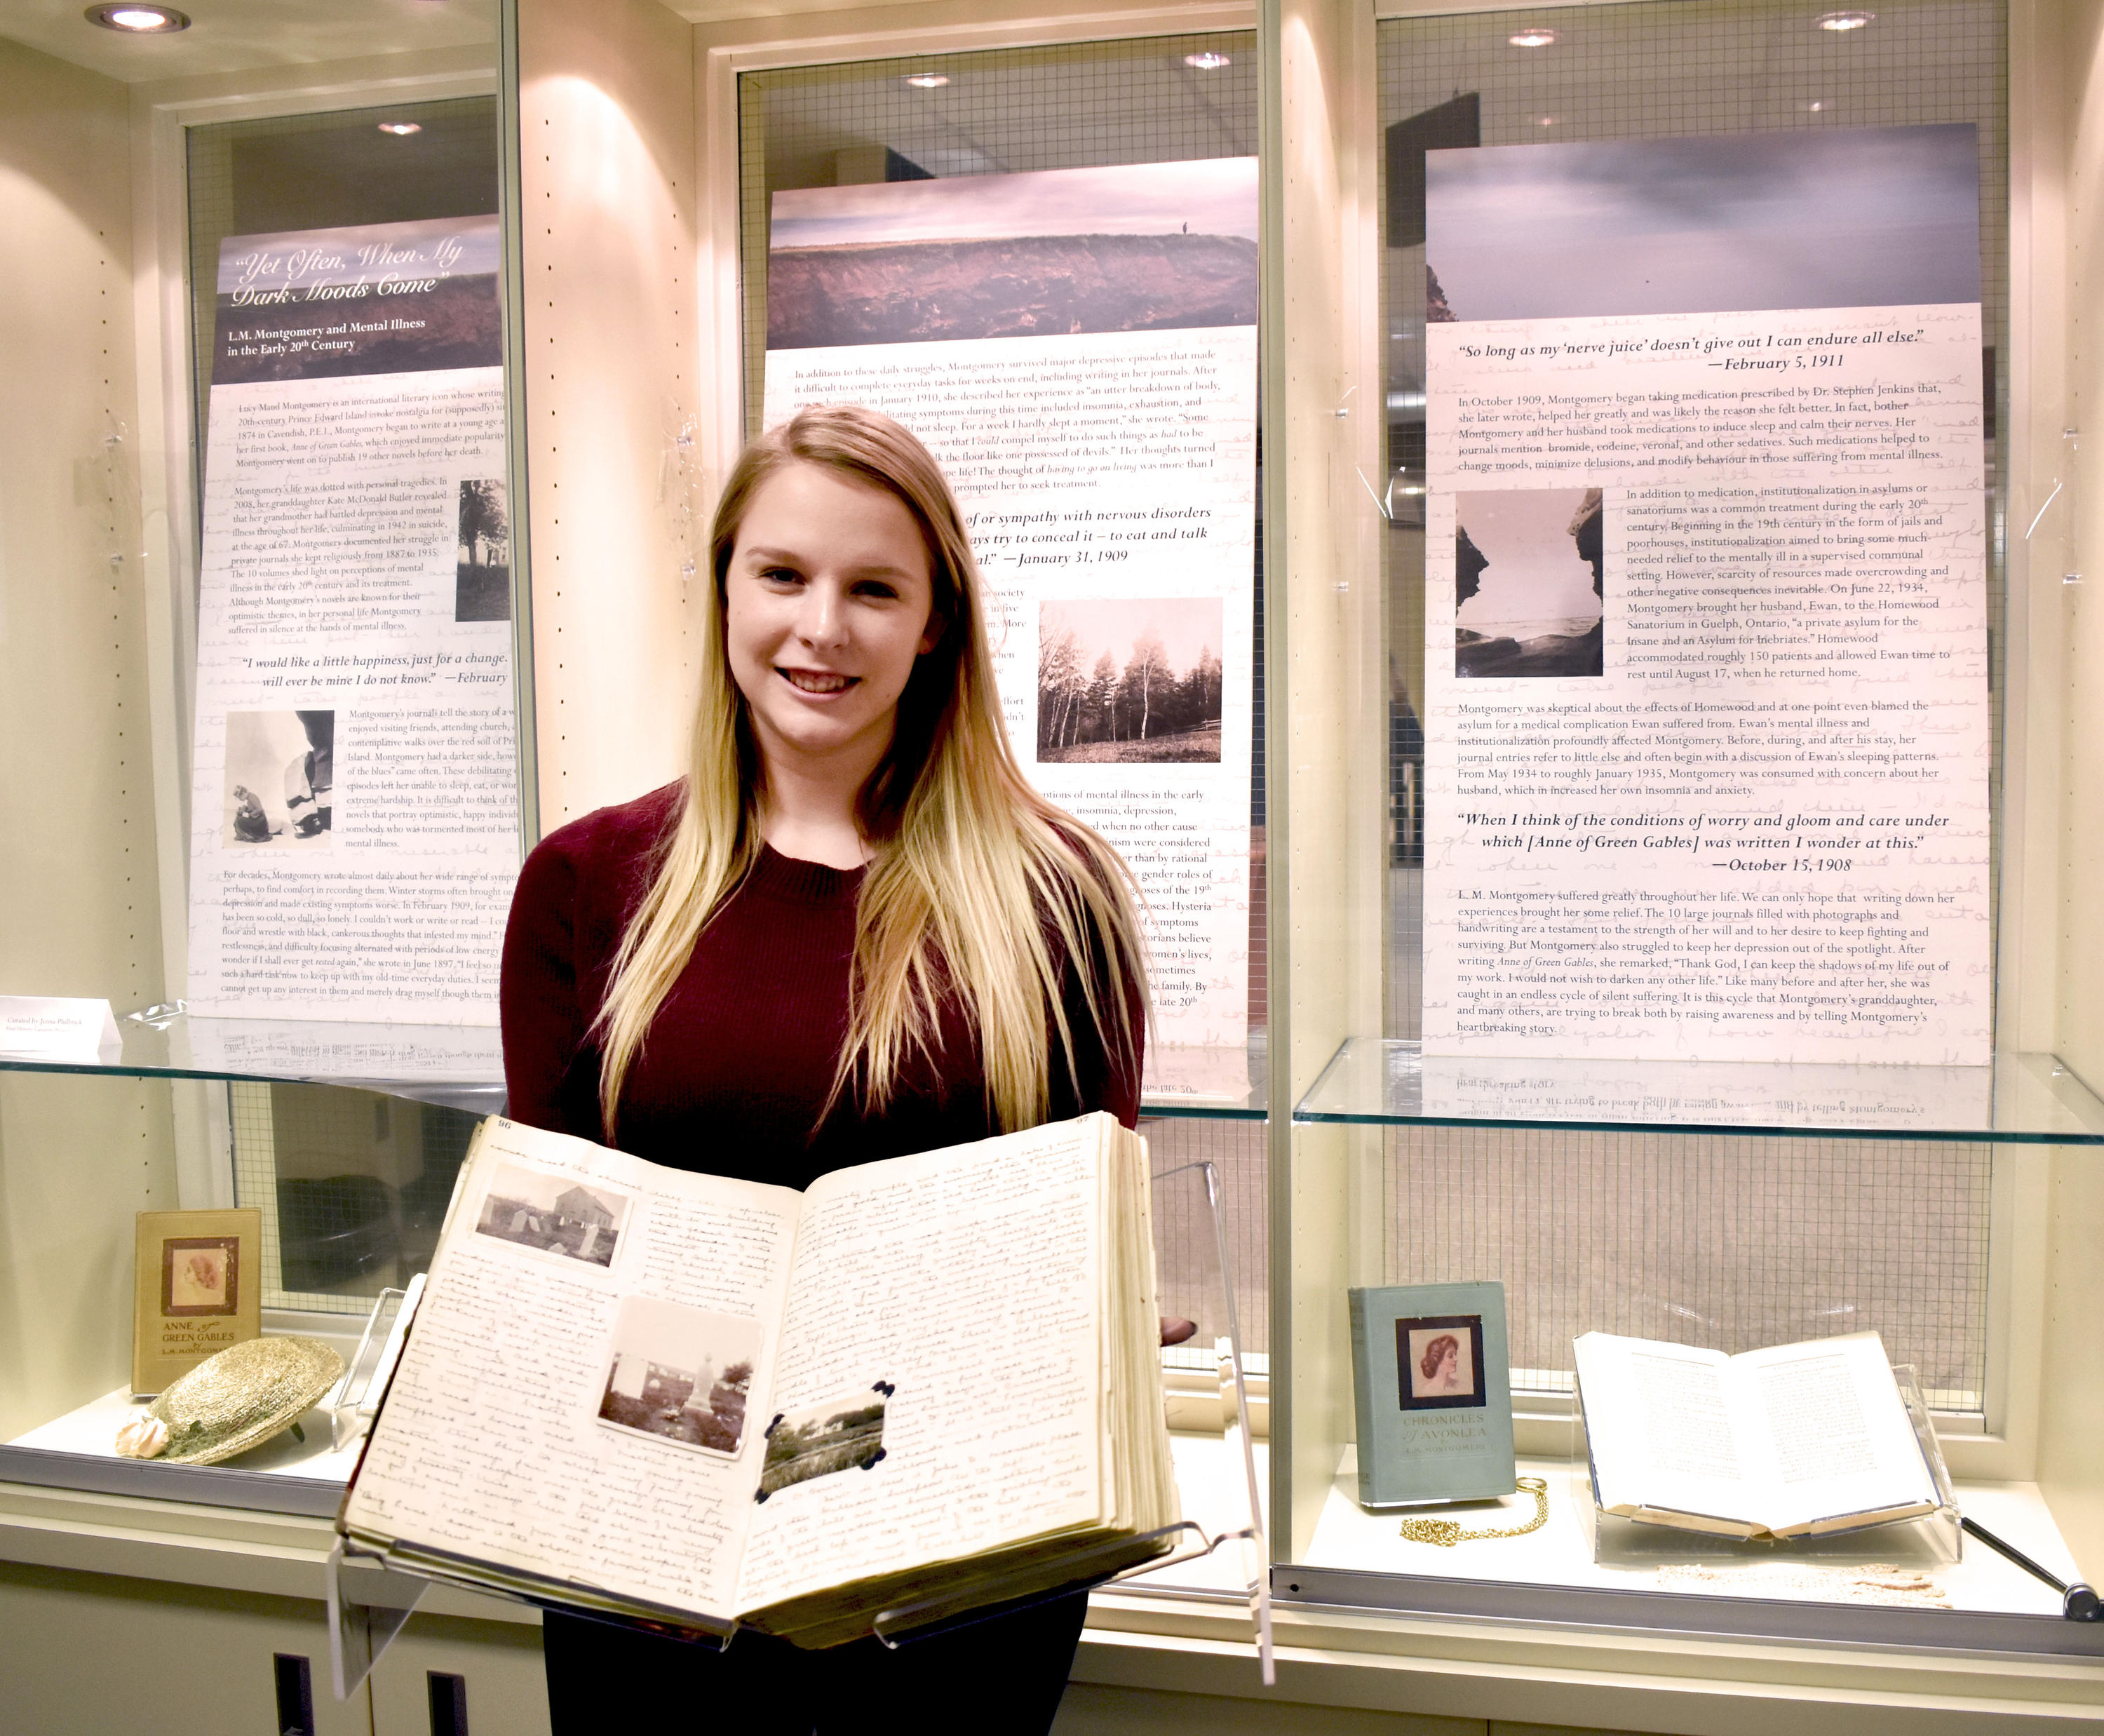 Jenna holding journal in front of exhibit